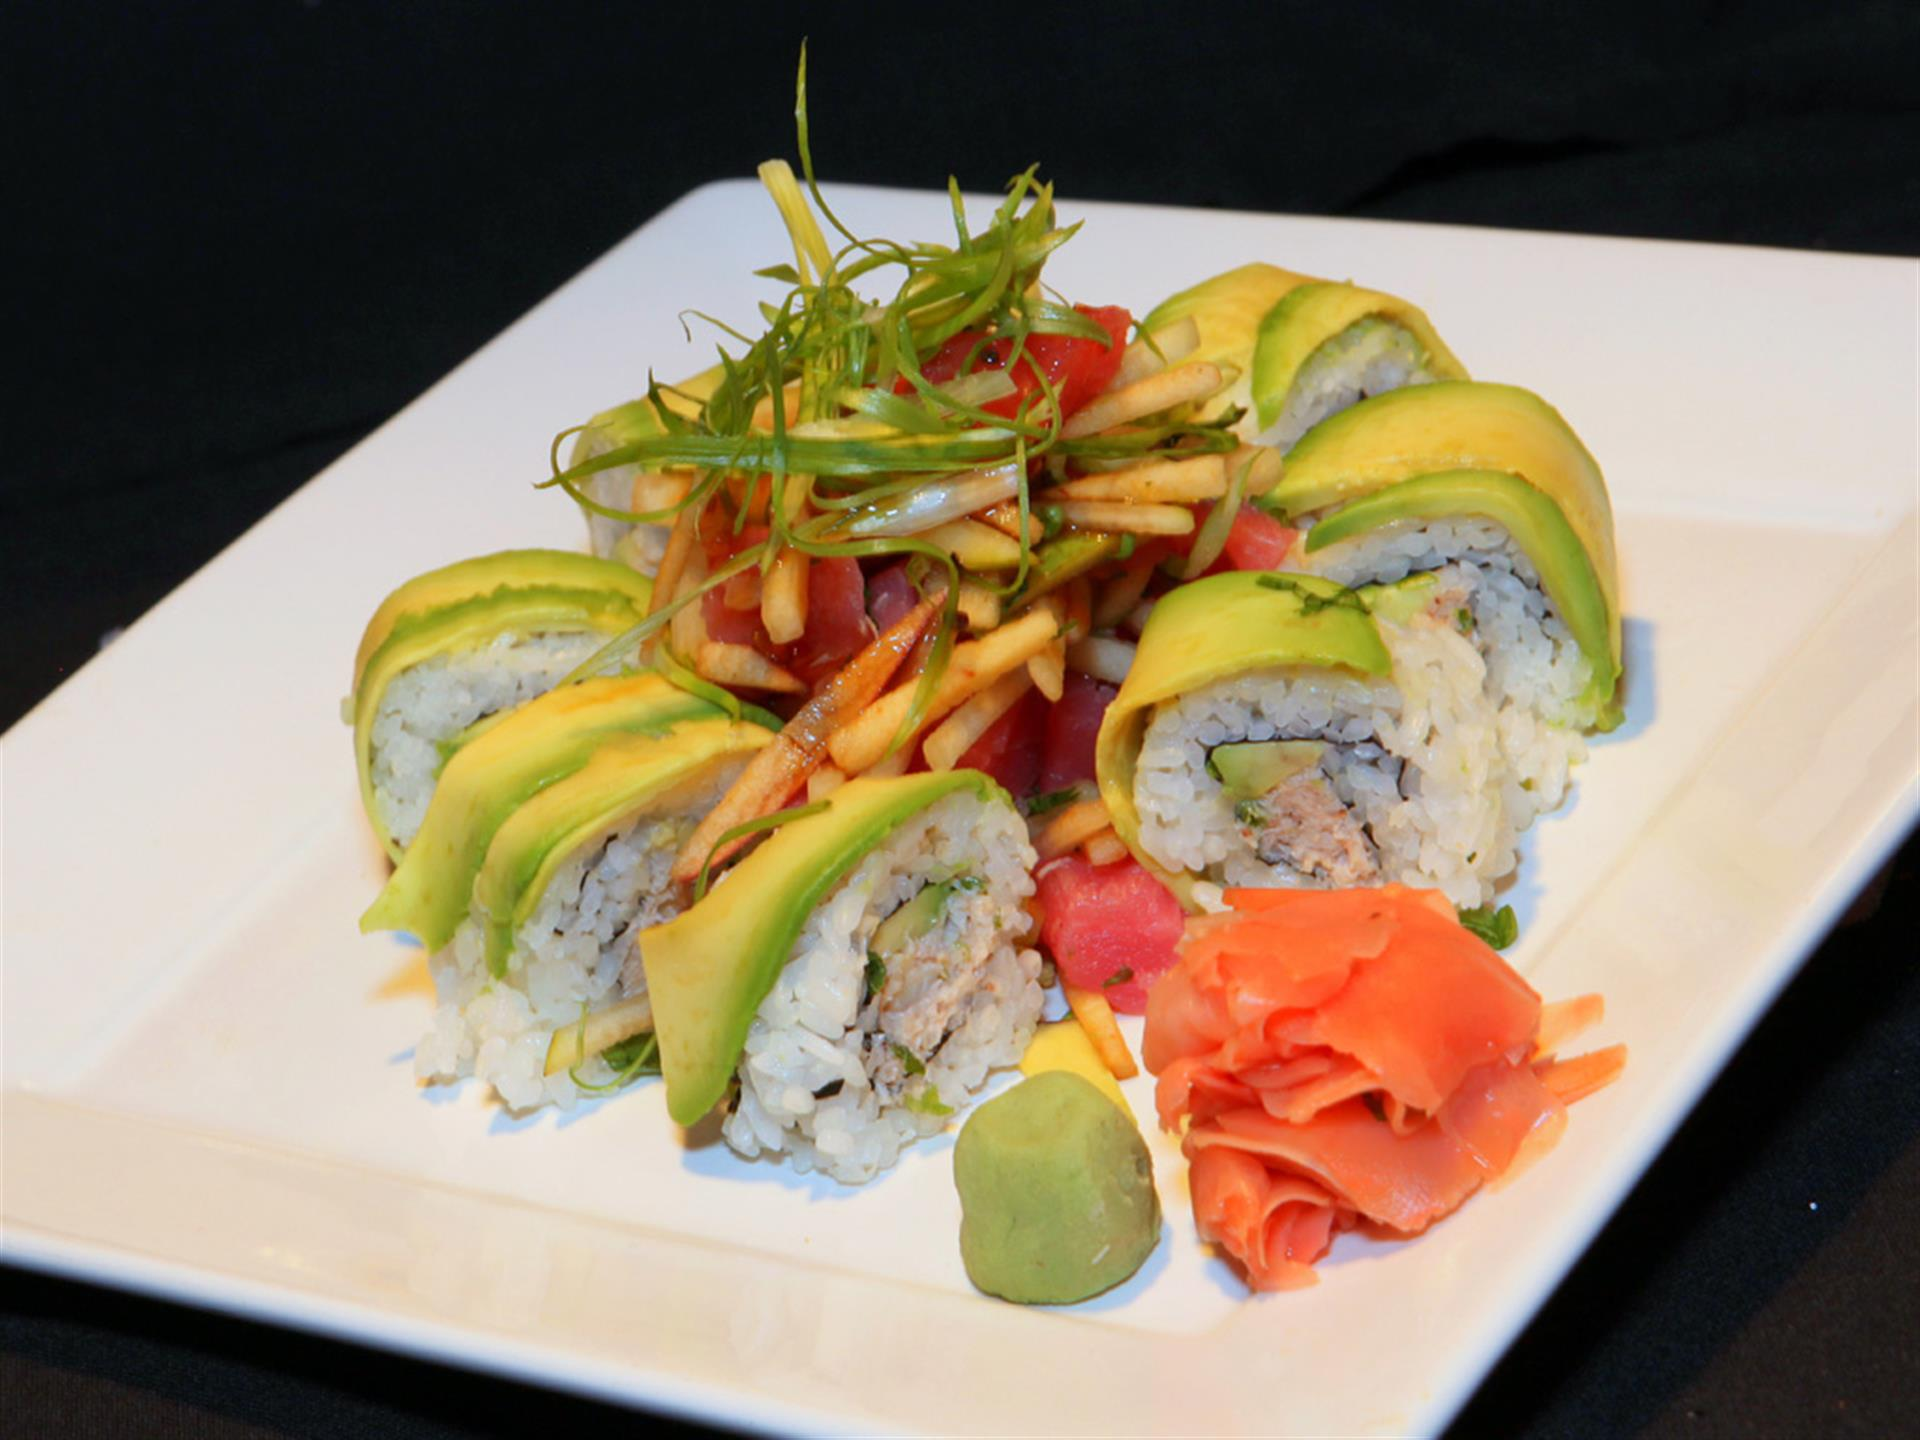 sushi roll topped with avocado in a circle